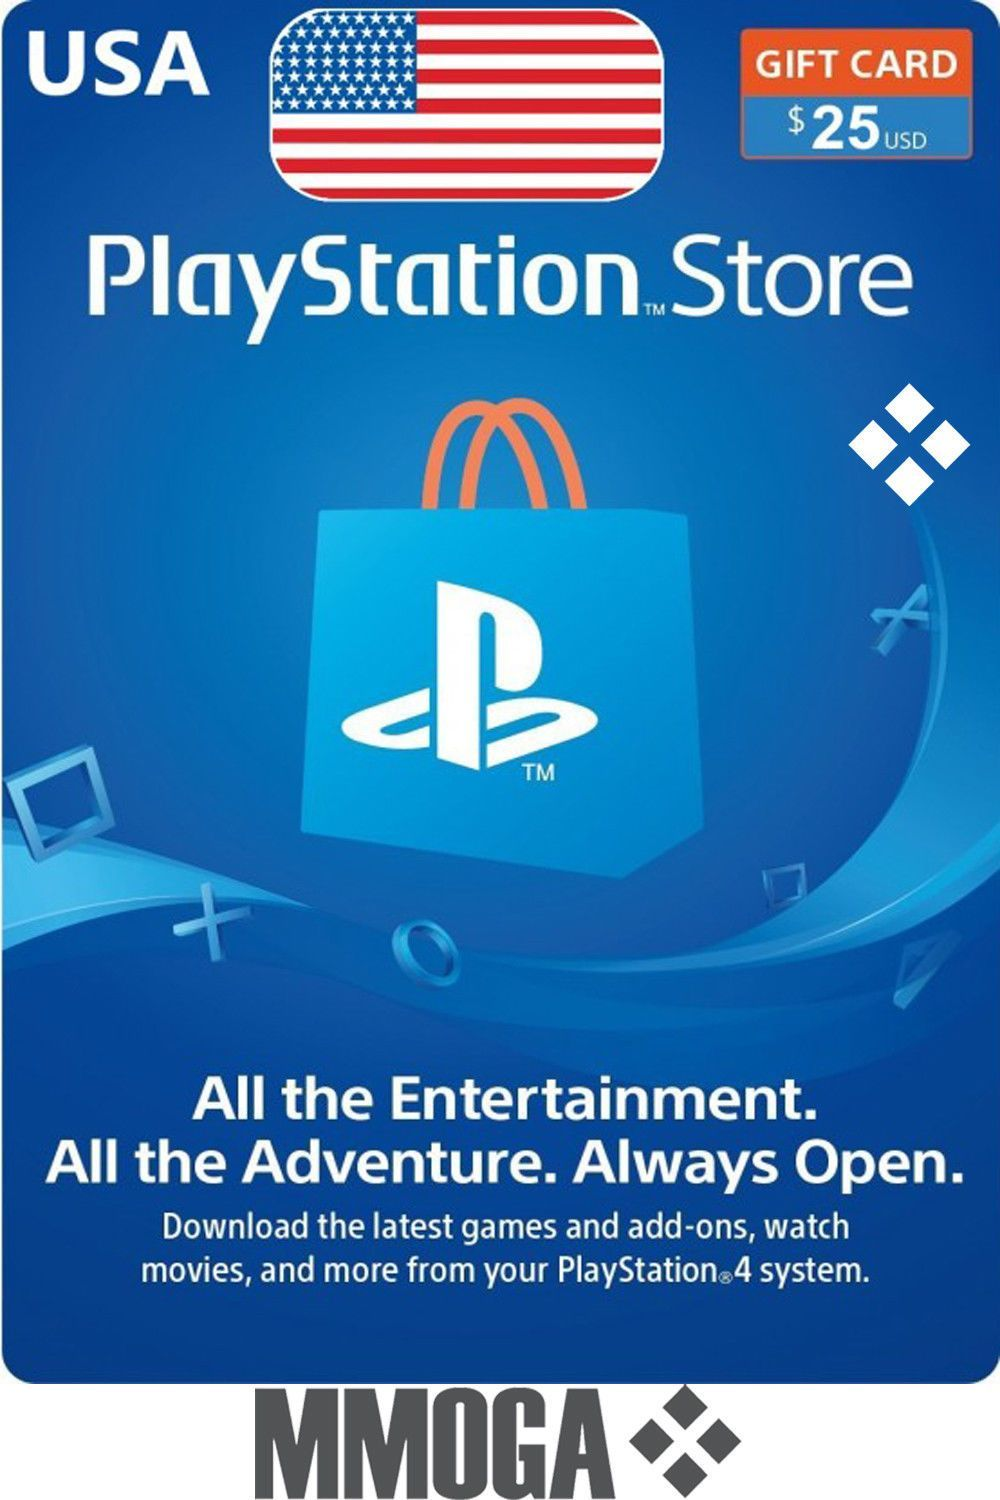 Pin by USA Gift Zone on PlayStation gift card in 2020